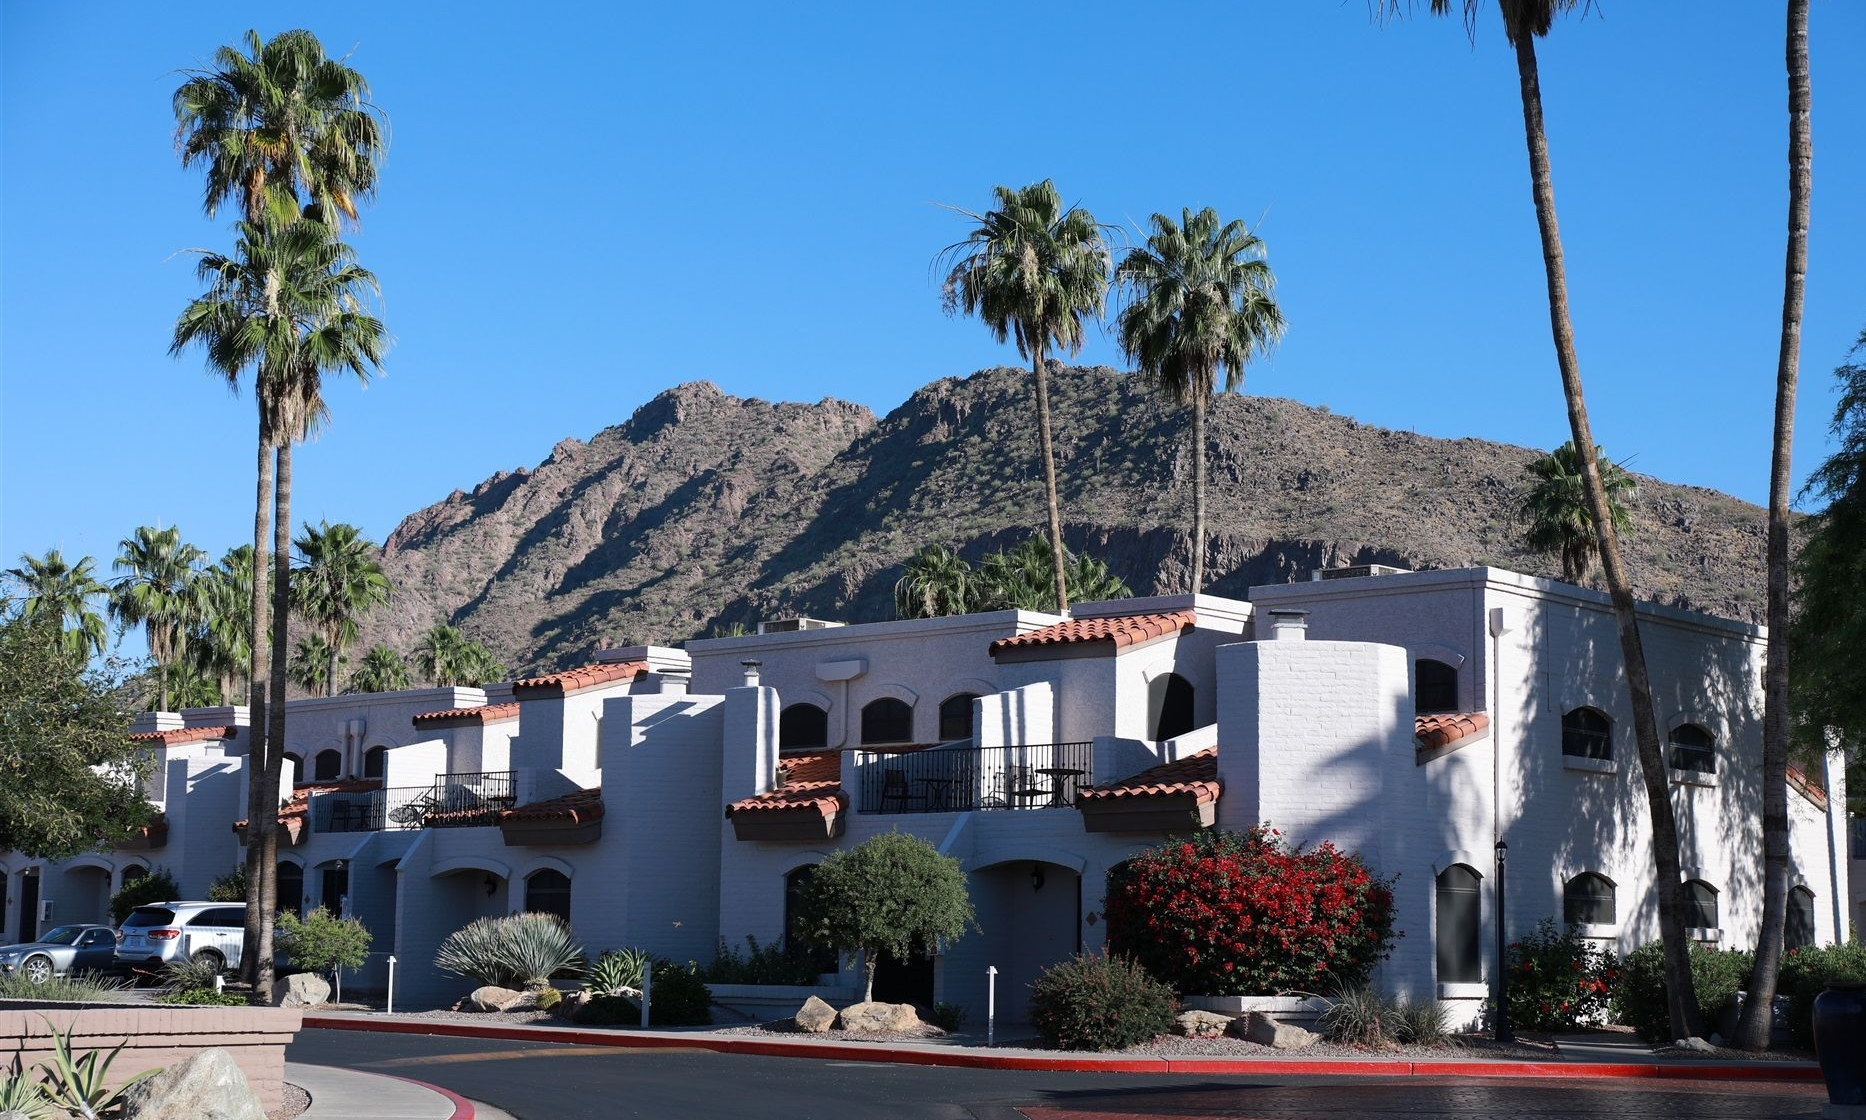 Villas - Featuring spacious villa accommodations located in a quiet residential neighborhood minutes from downtown Scottsdale and area attractions.